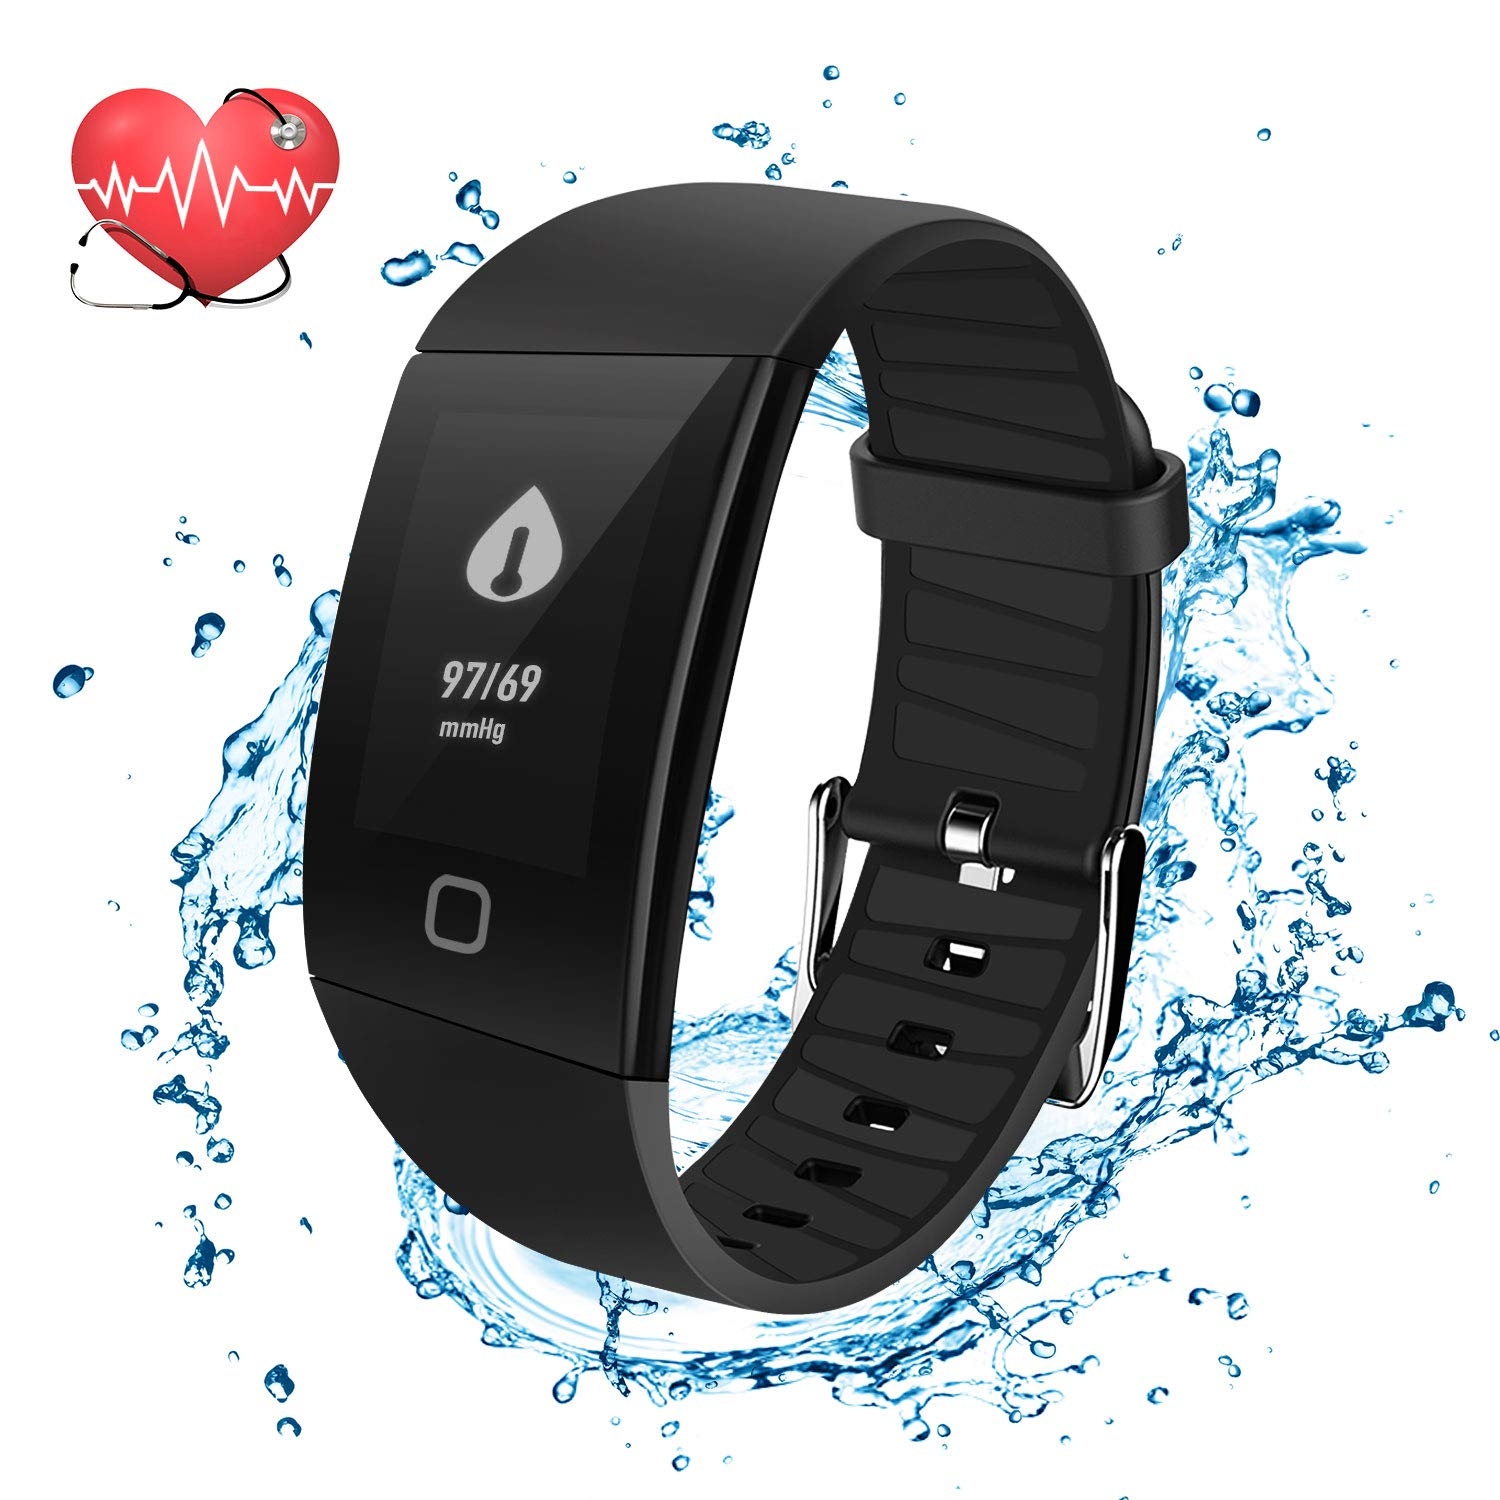 Mbuynow Fitness Tracker, Fitness Watch Activity Tracker with Heart Rate Monitor Watch, Waterproof Smart Bracelet with Step Counter, Calorie Counter, Pedometer Watch for Kids Women and Men